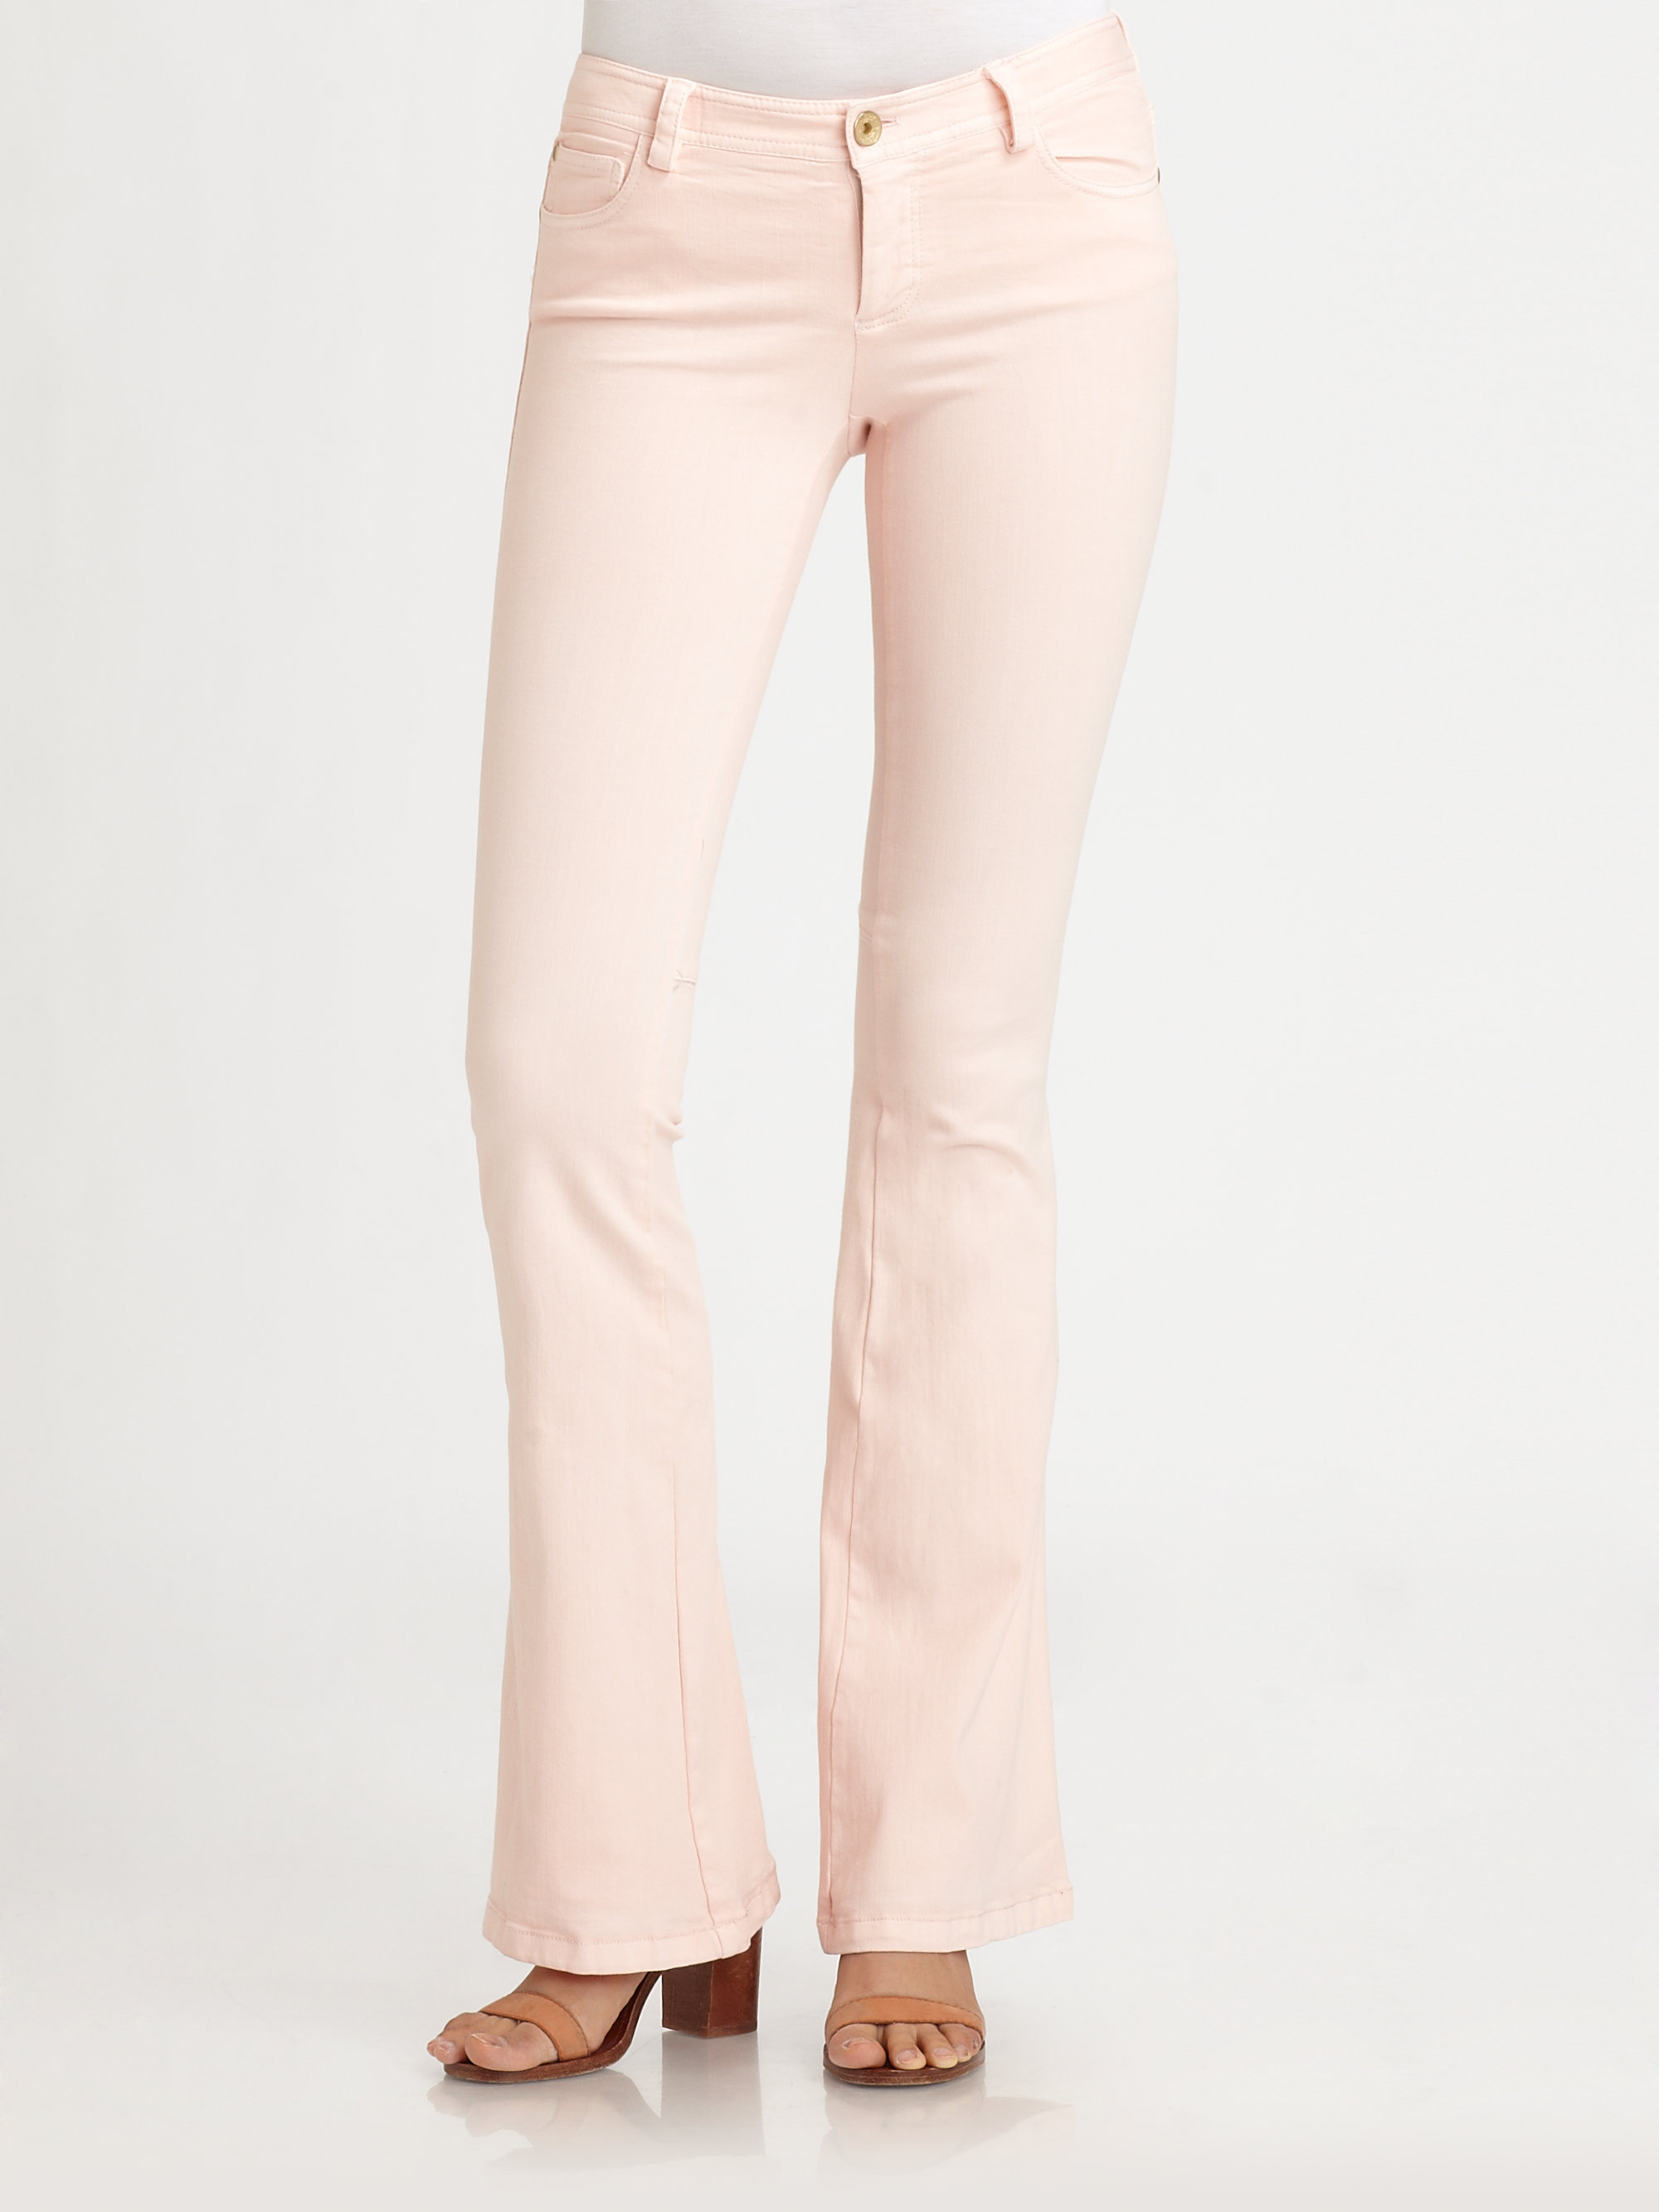 Alice   olivia Stacey Flare Jeans in Pink | Lyst